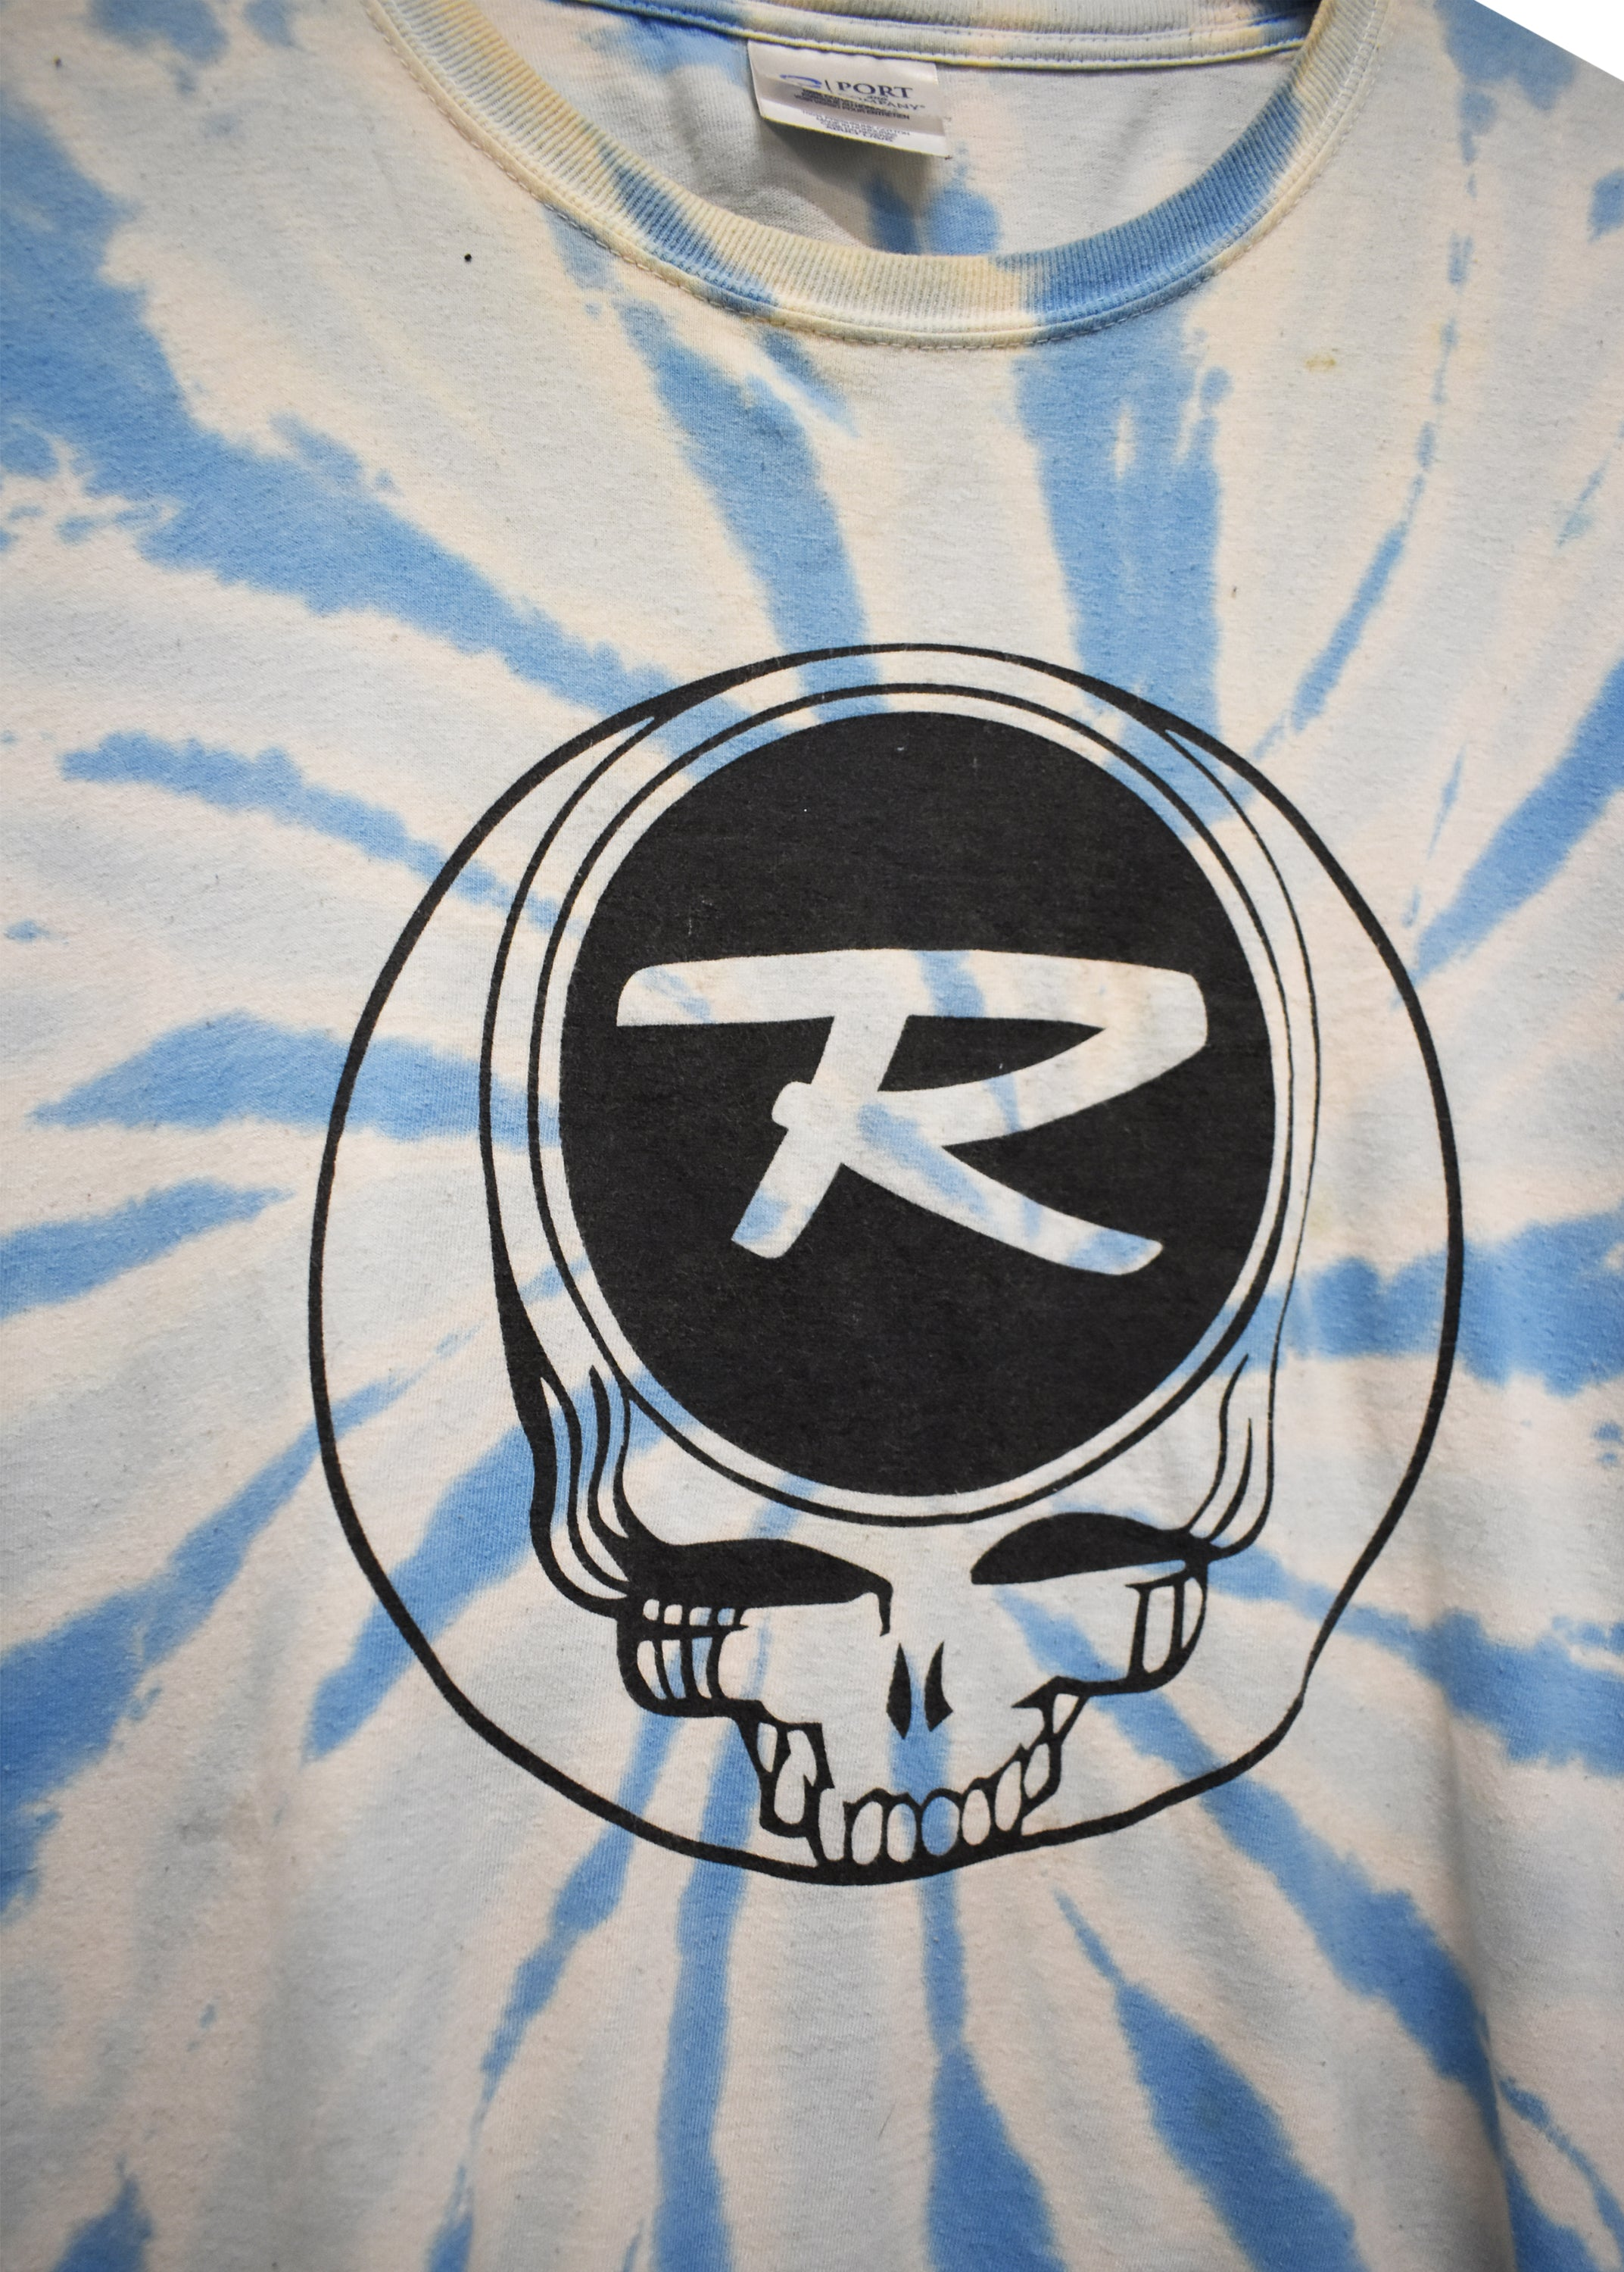 1987 THE CURE 'DISINTERGRATION / THE PRAYER TOUR' VINTAGE TEE